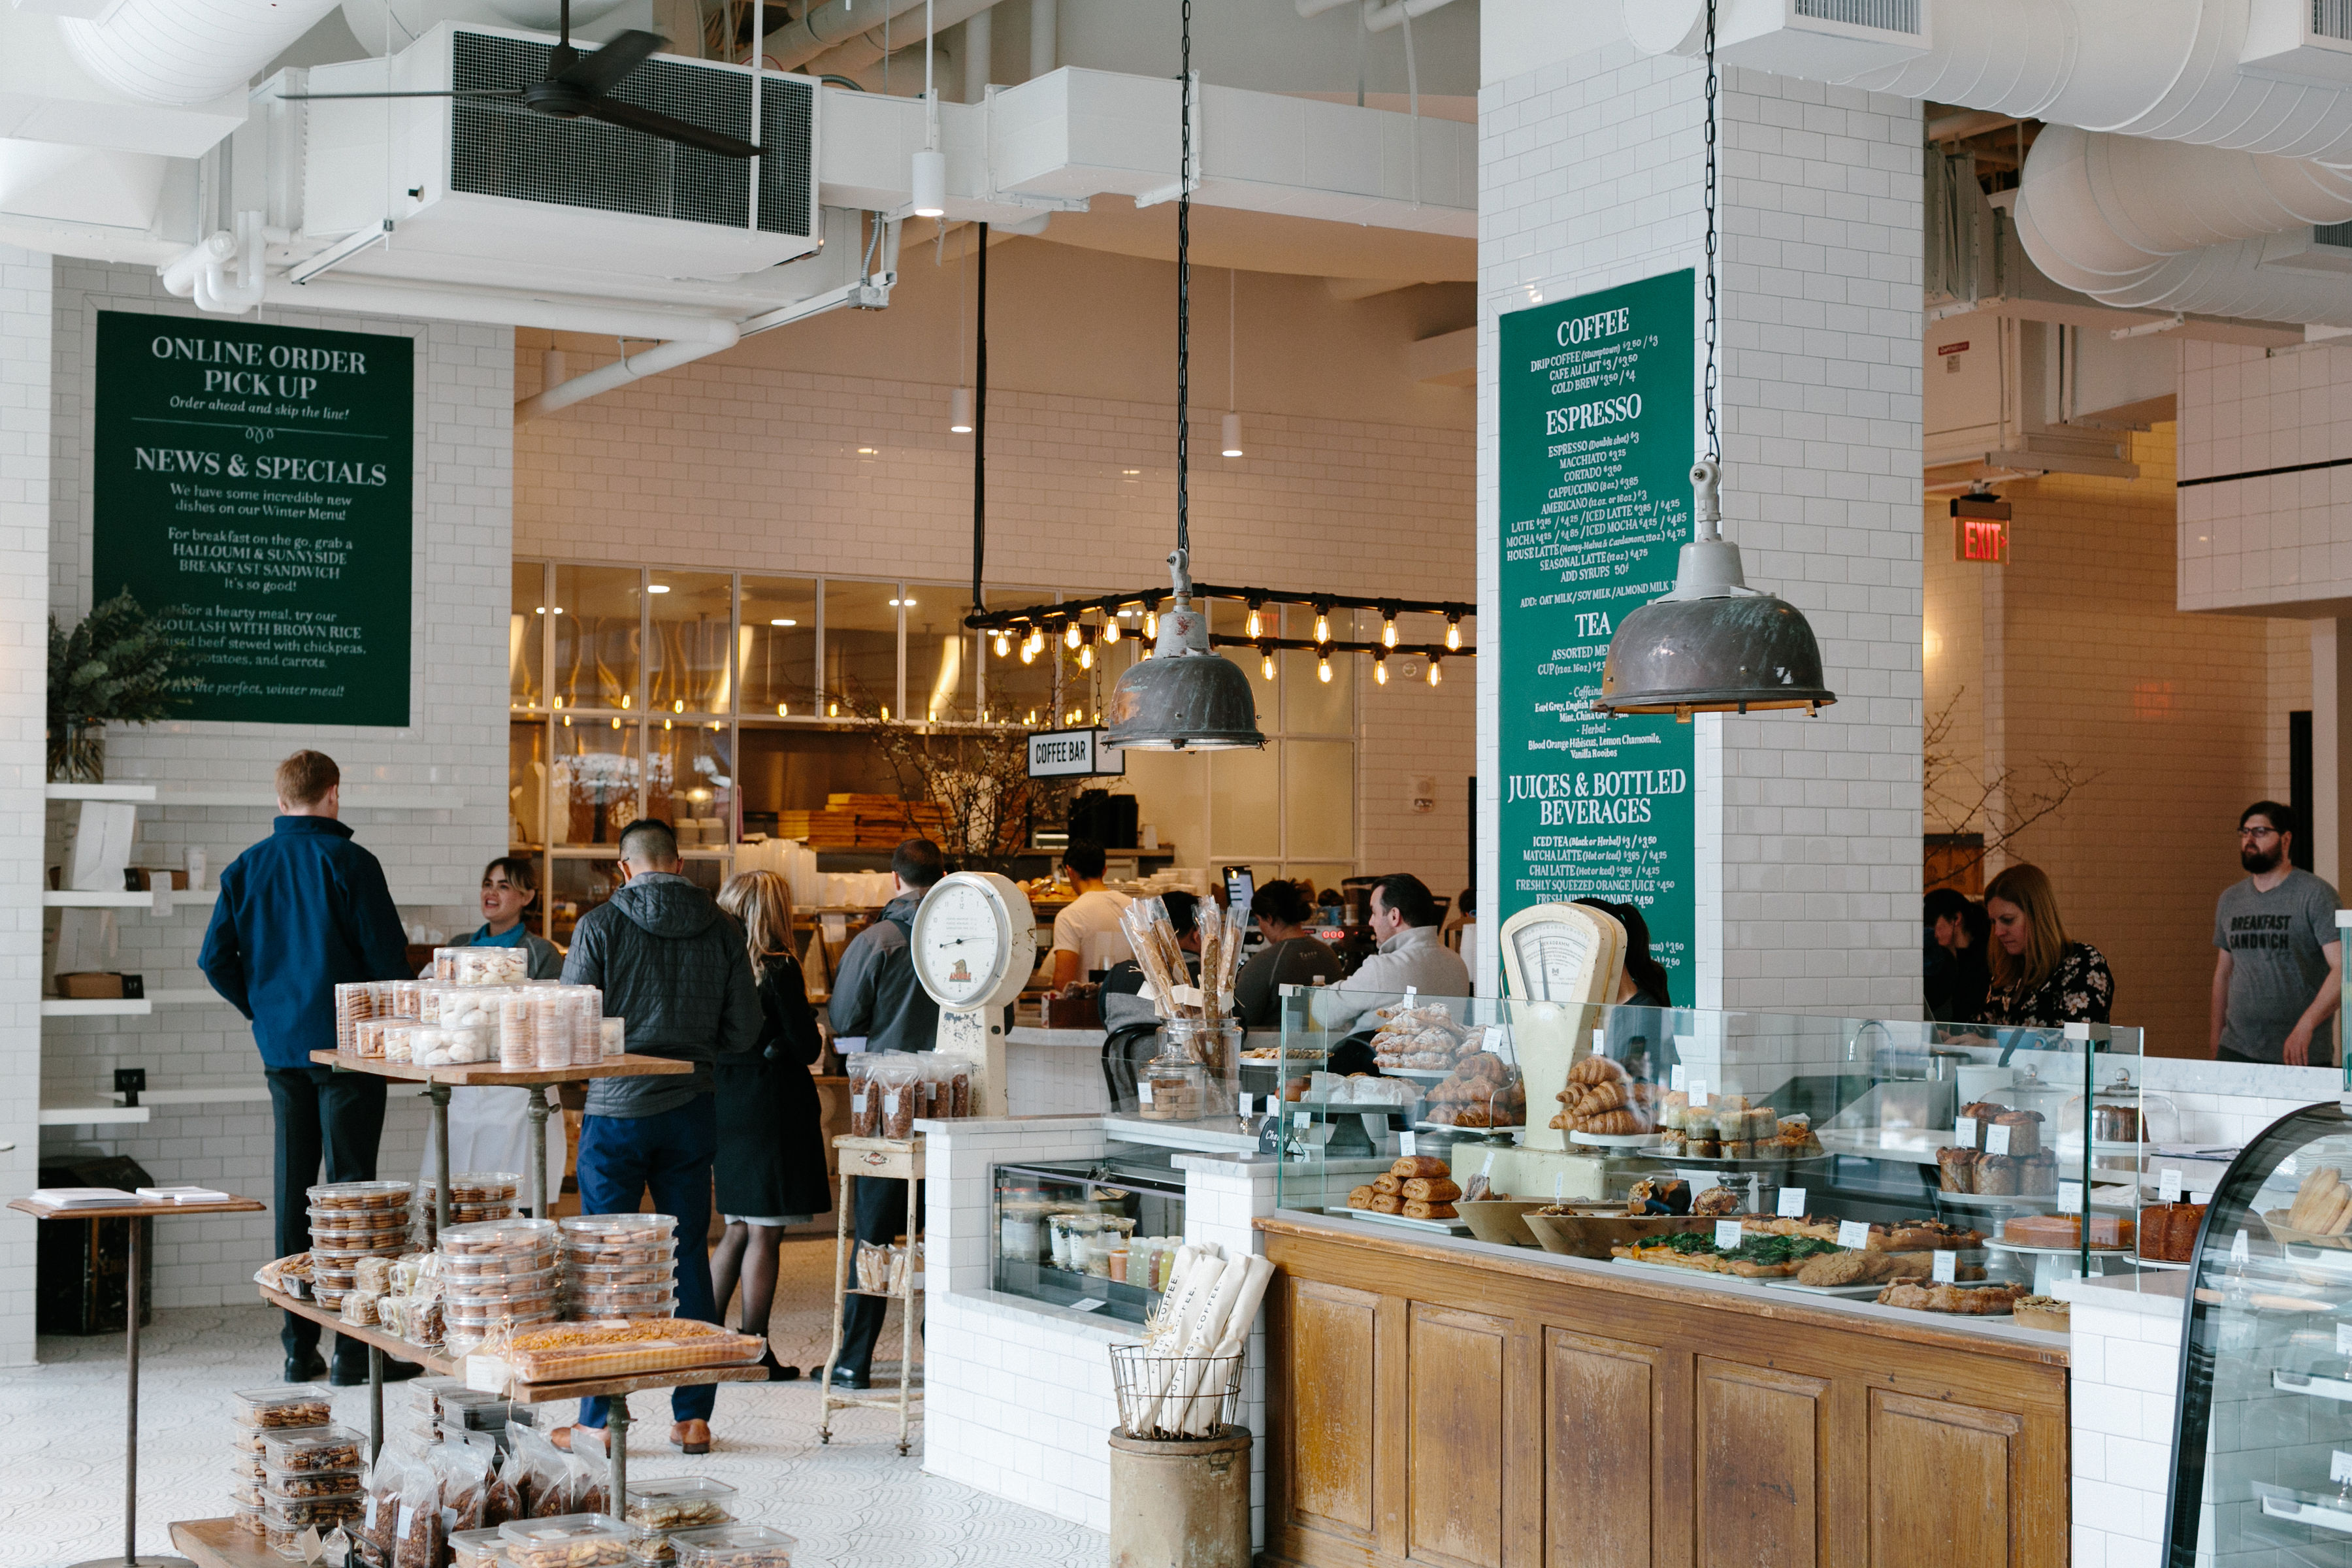 Tatte Adds Stunning Pastries to the Berklee Campus Today